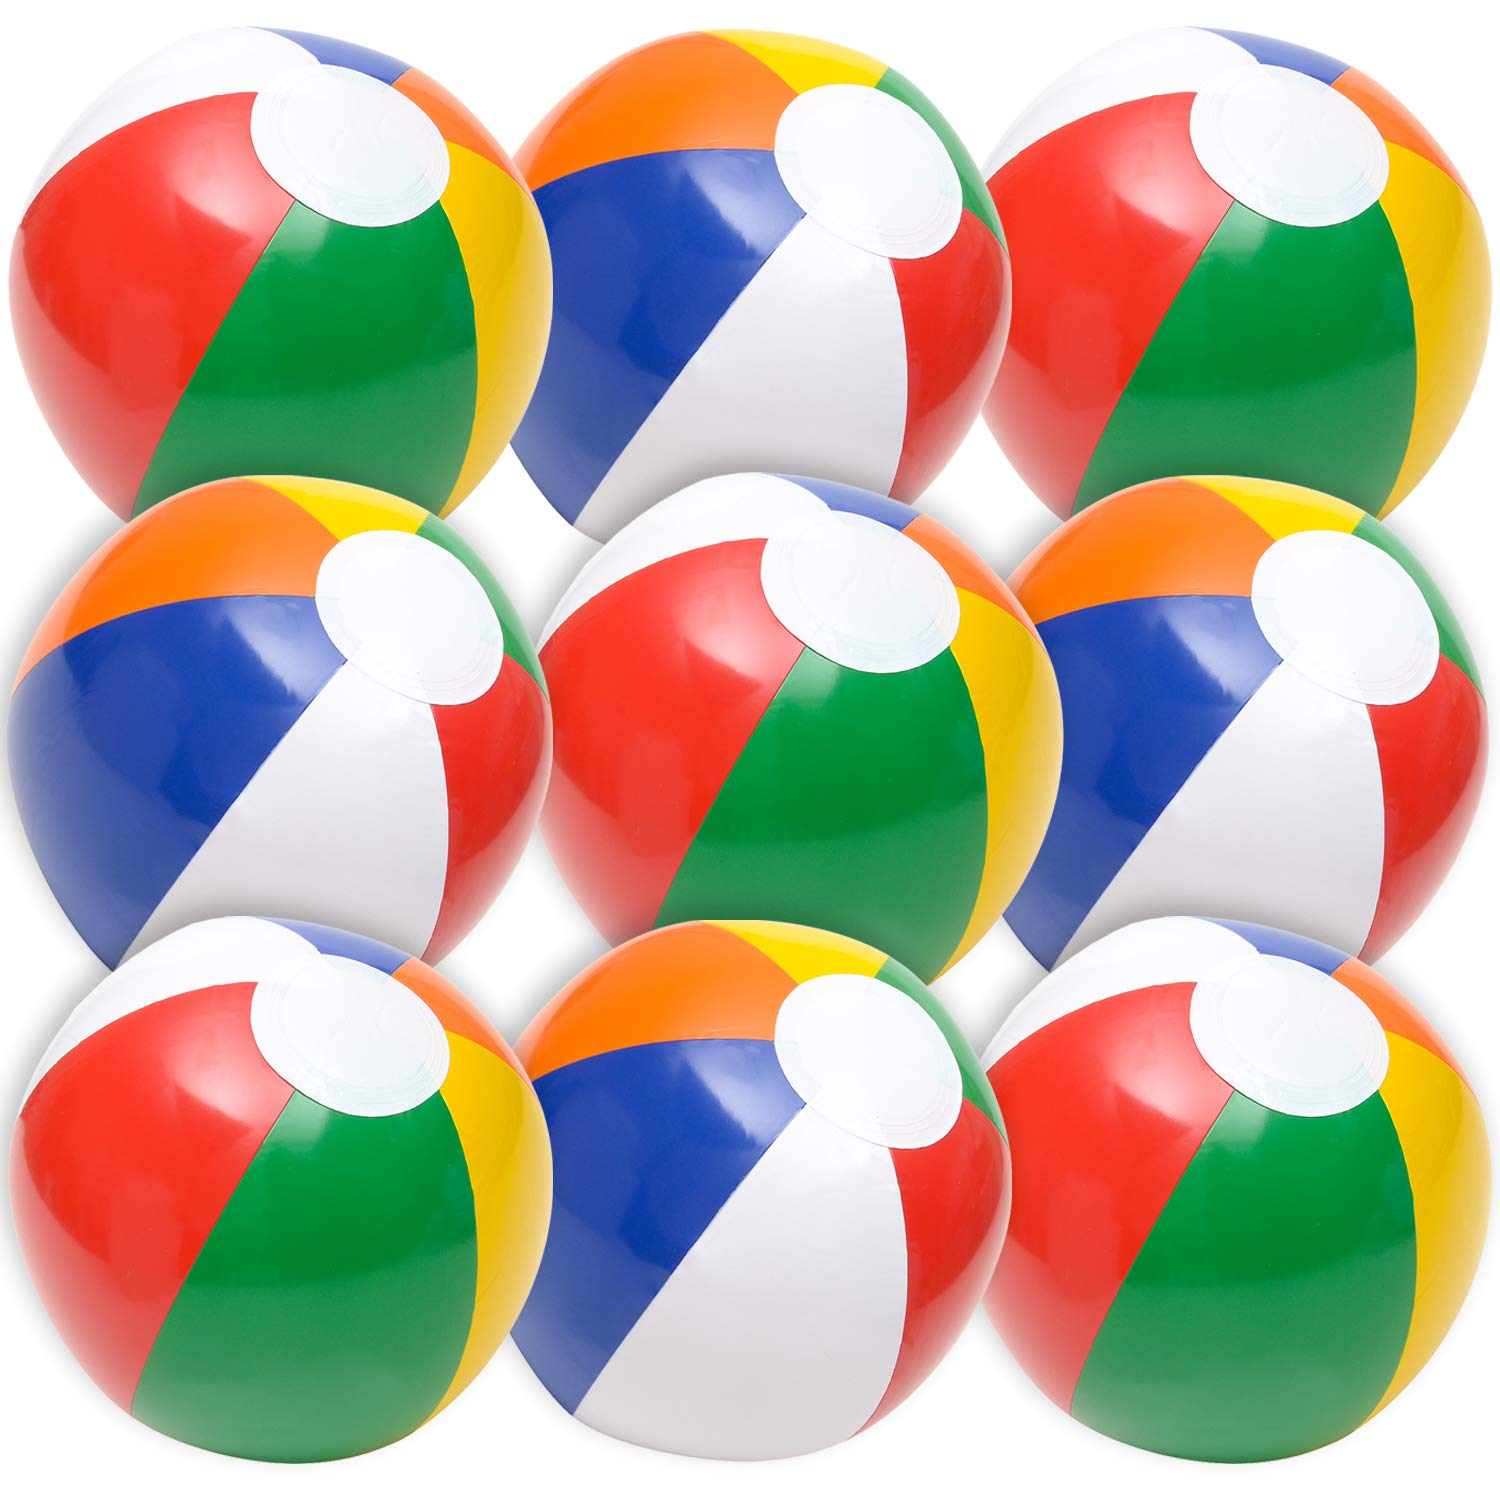 Beach Balls in Bulk - (Pack of 12) 16 Inch Inflatable Rainbow Beach Ball Toys for Kids, Dozen Beach Balls for Games, Pool Toys, Decorations, Party Favors by Bedwina